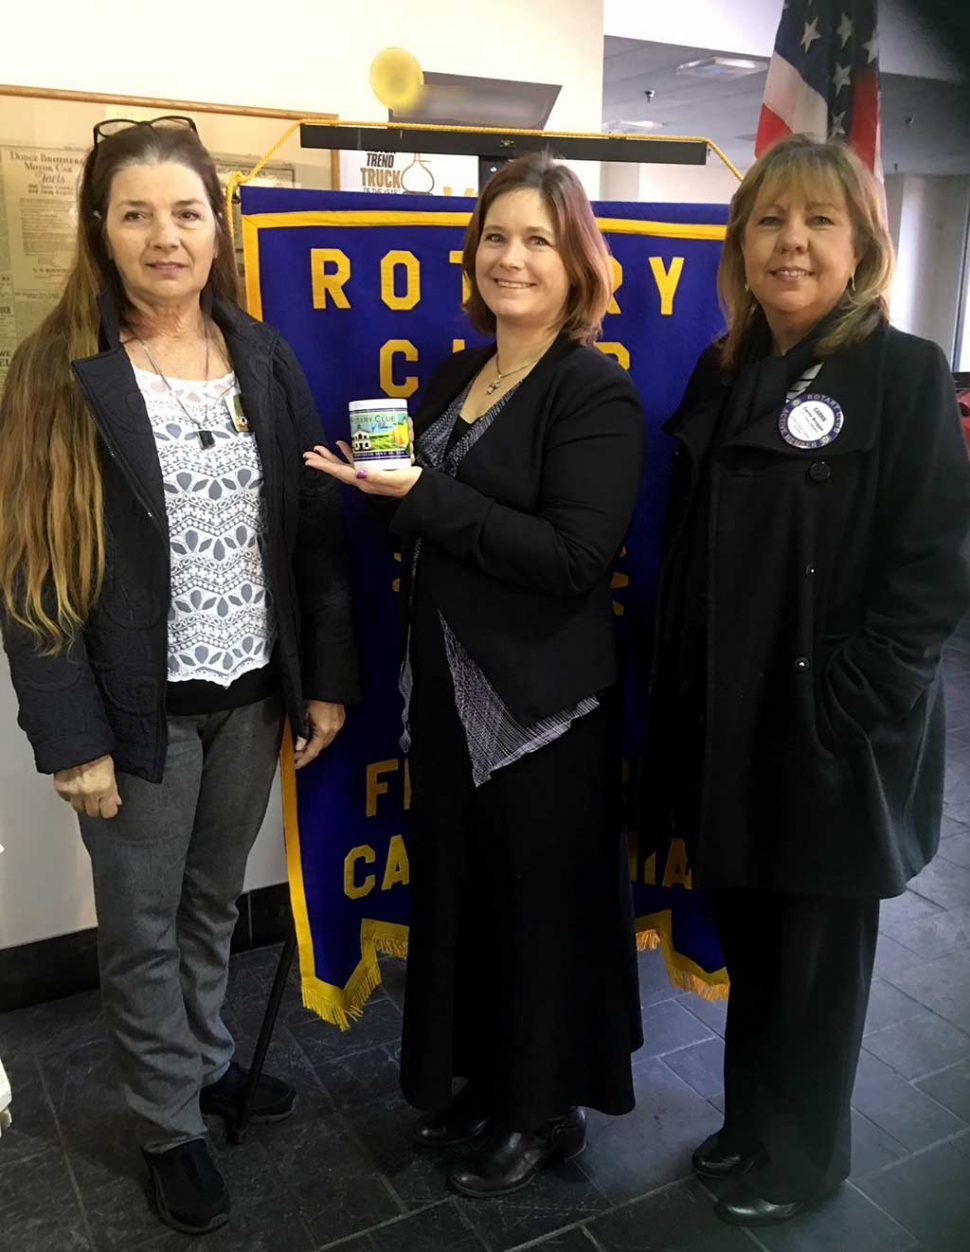 Fillmore Rotary Club Updated on City Projects. President Julie Latshaw, speaker Roxanne Hughes and Program Chair Carrie Broggie Roxanne Hughes, the City of Fillmore Engineer updated the Club on projects she is working on including the new traffic signal on Mountain View/126, more sidewalks and paving local streets.